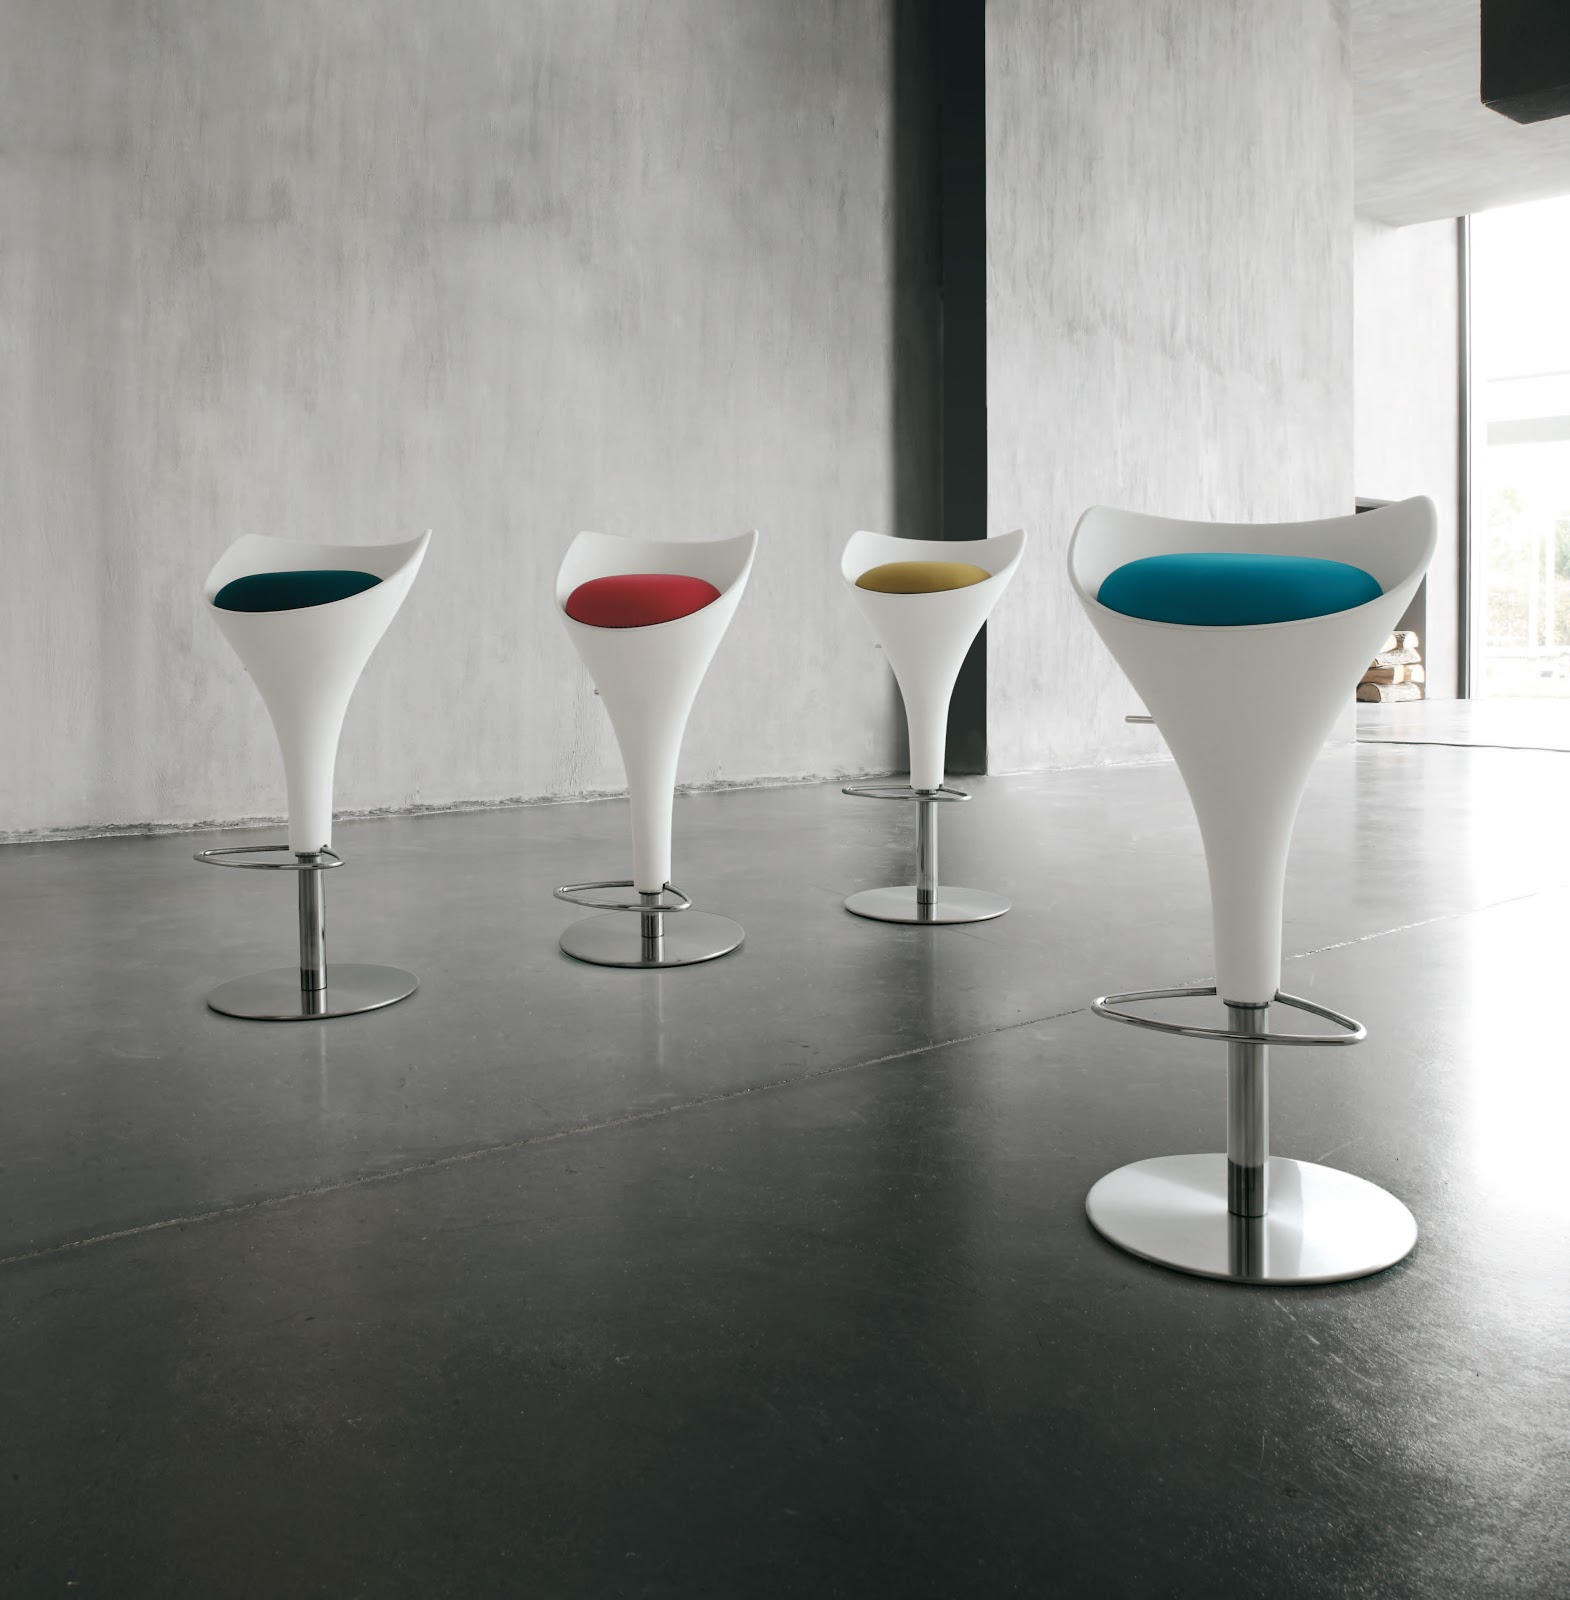 Inspiration mobilier design tabourets de bar design et color s - Tabourets bar design ...